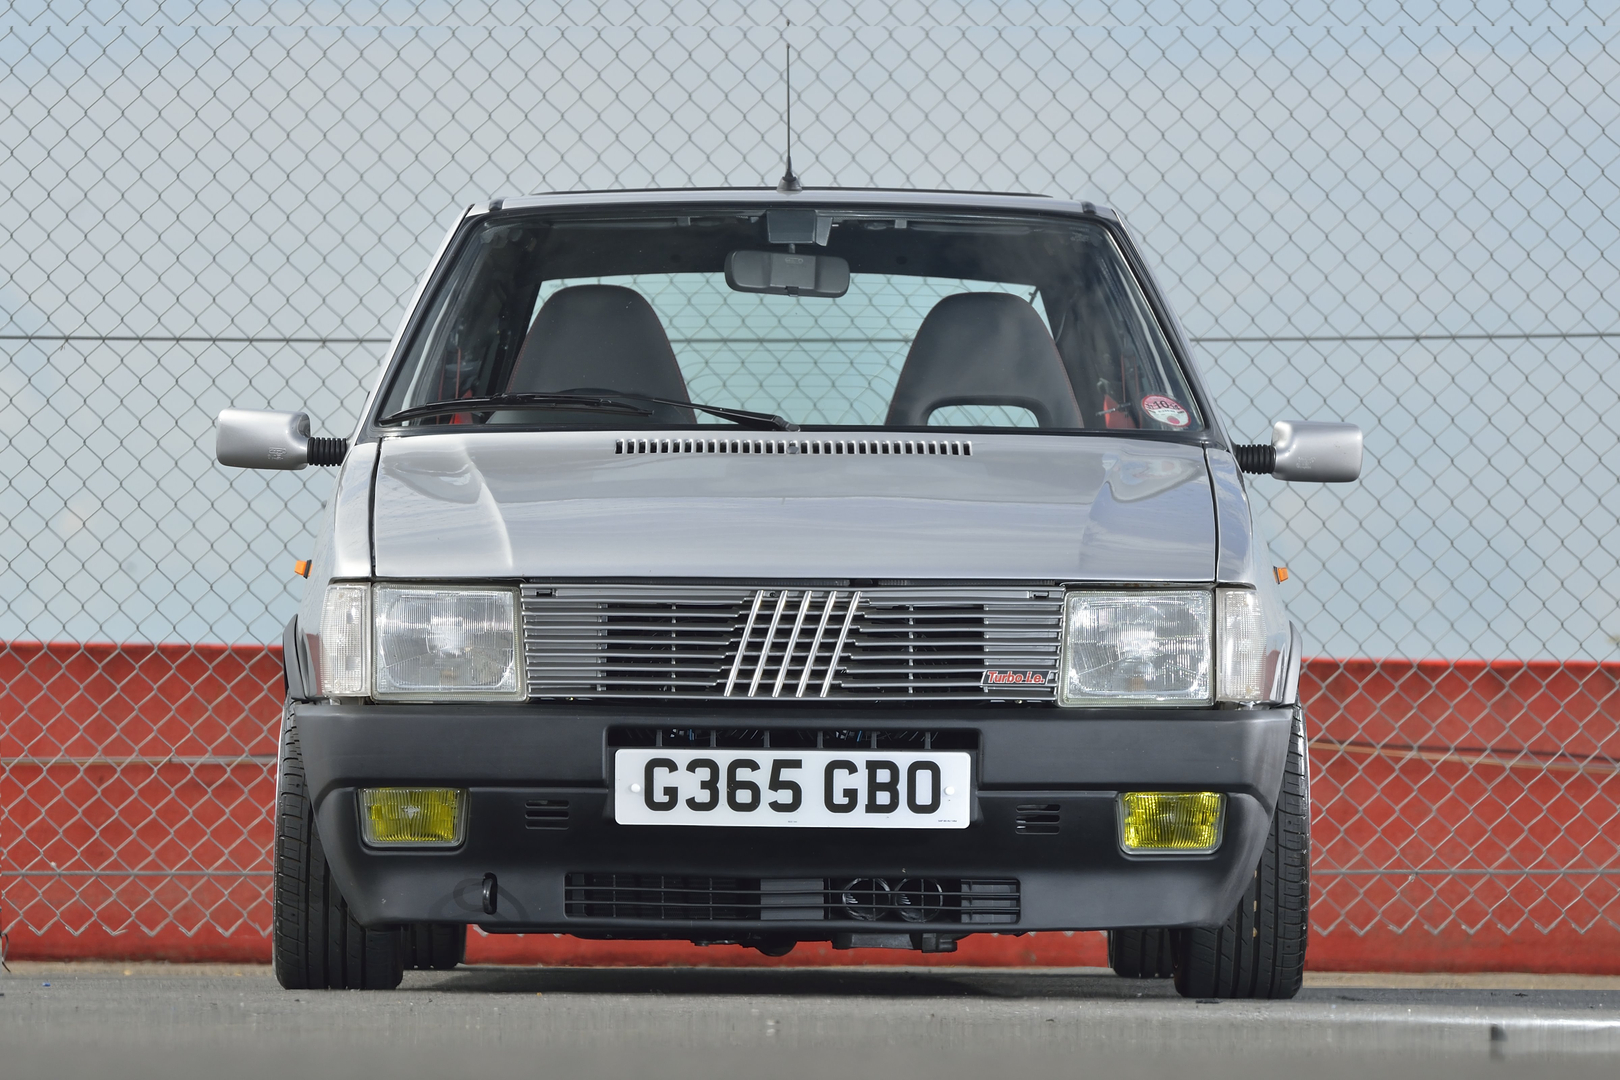 Club fiat uno turbo ie fiat world test drive futoc fiat uno turbo owners collective uno turbo club altavistaventures